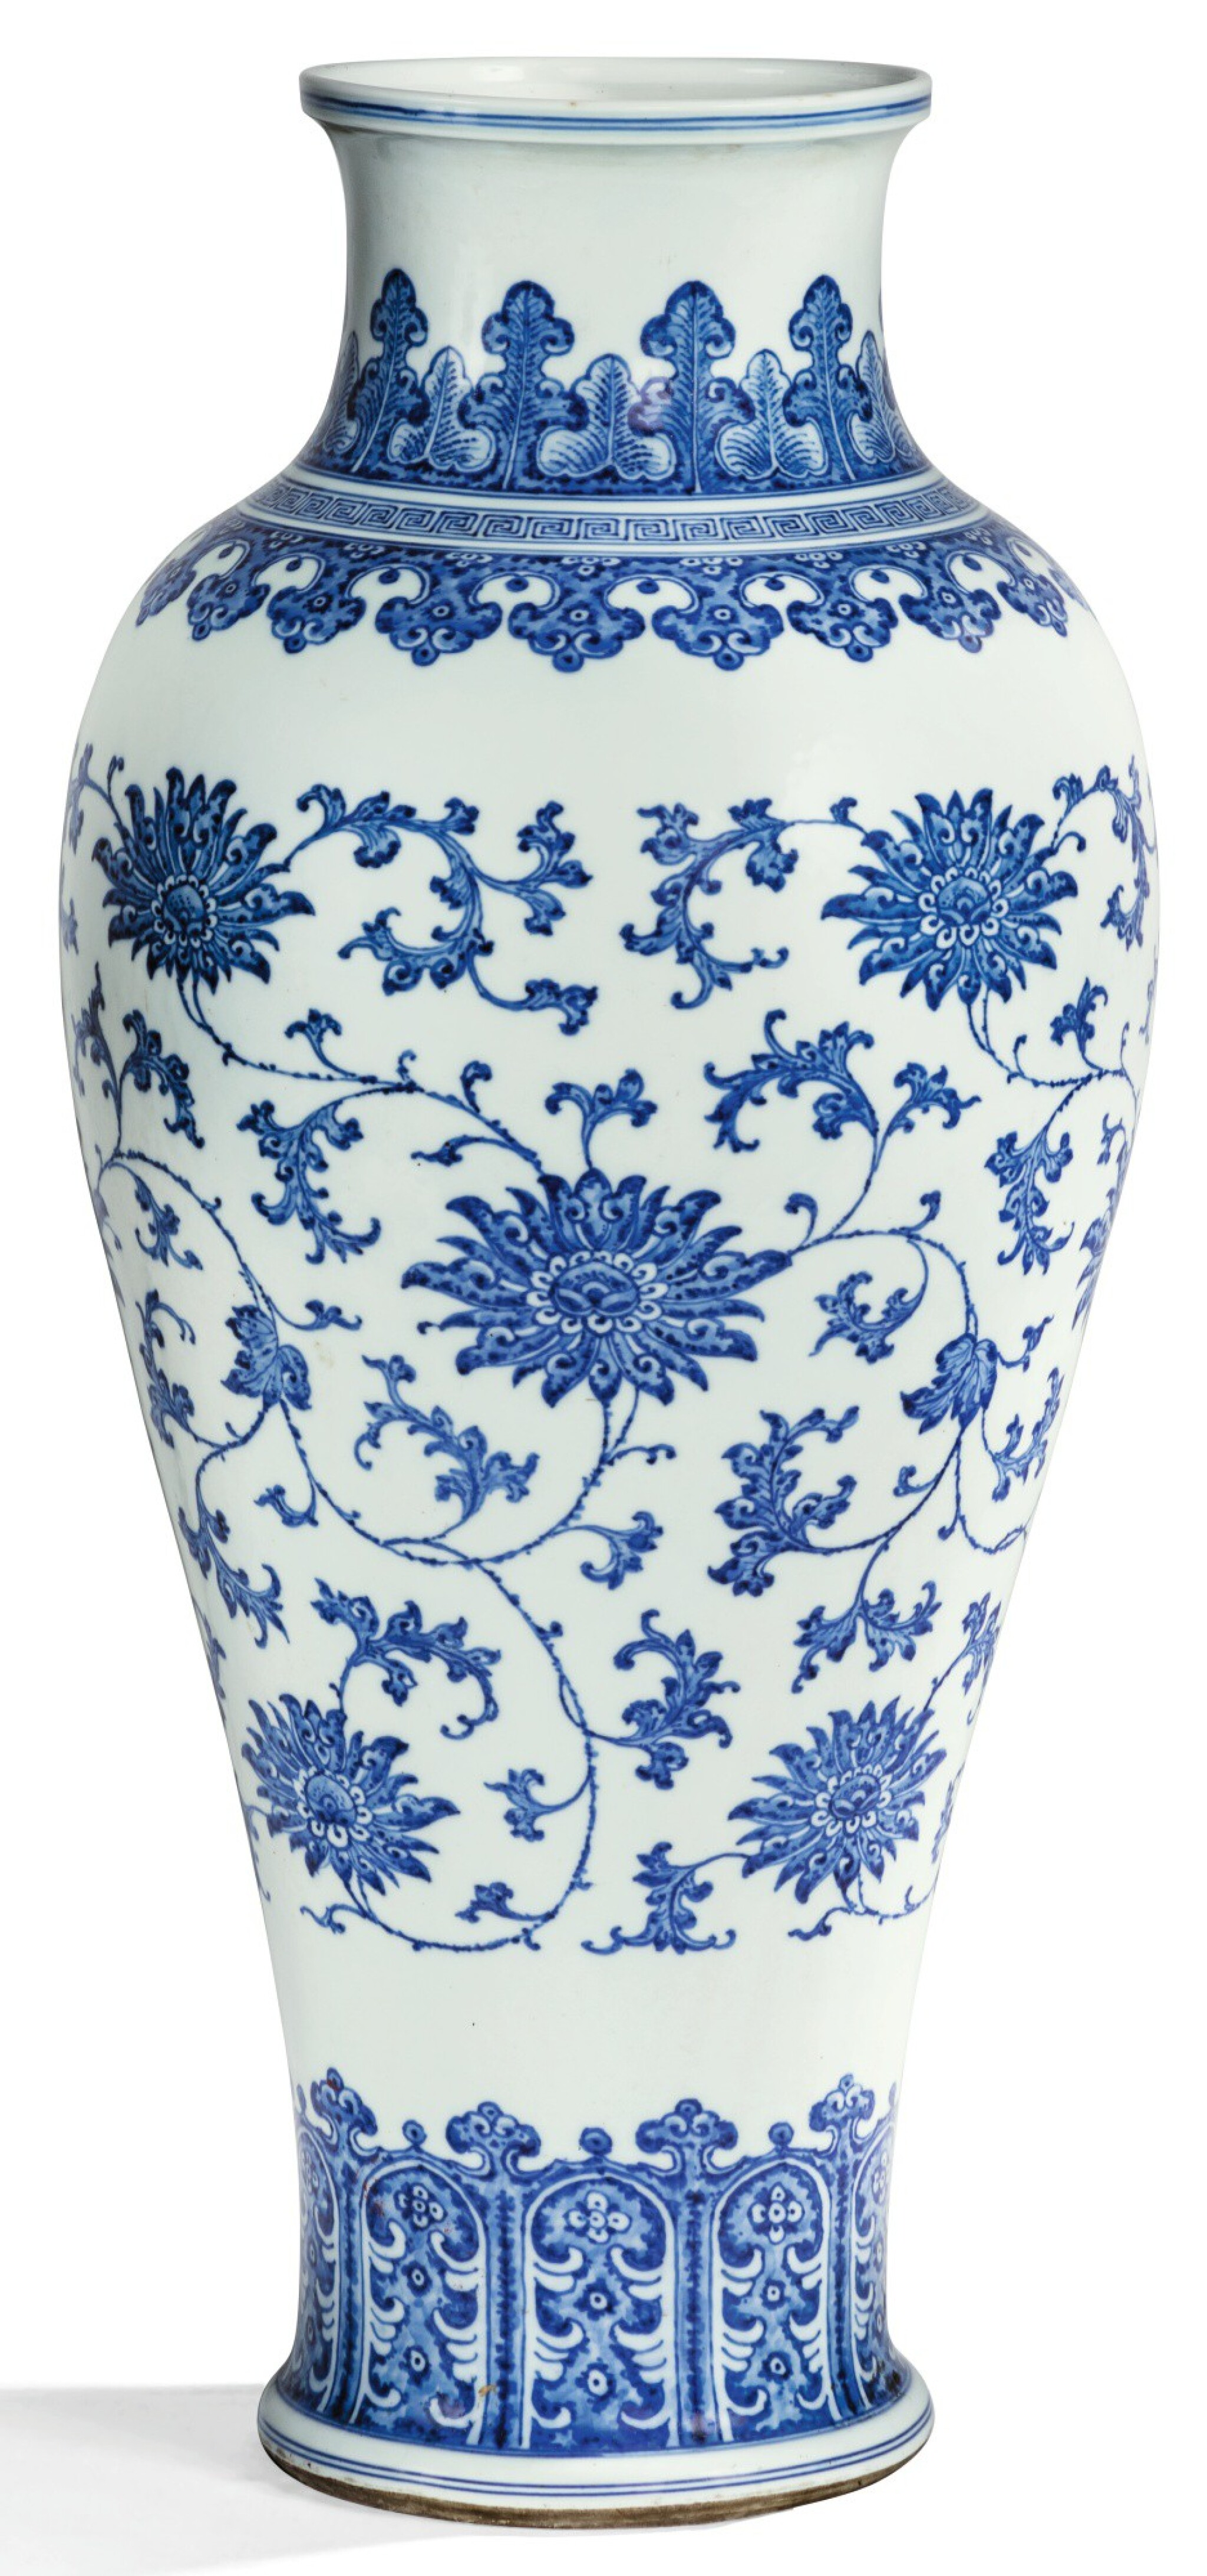 View full screen - View 1 of Lot 8. RARE GRAND VASE BALUSTRE EN PORCELAINE BLEU BLANC DYNASTIE QING, XVIIIE SIÈCLE | 清十八世紀 青花纏枝蓮紋觀音尊 | A rare large blue and white 'lotus' baluster vase, Qing Dynasty, 18th century .